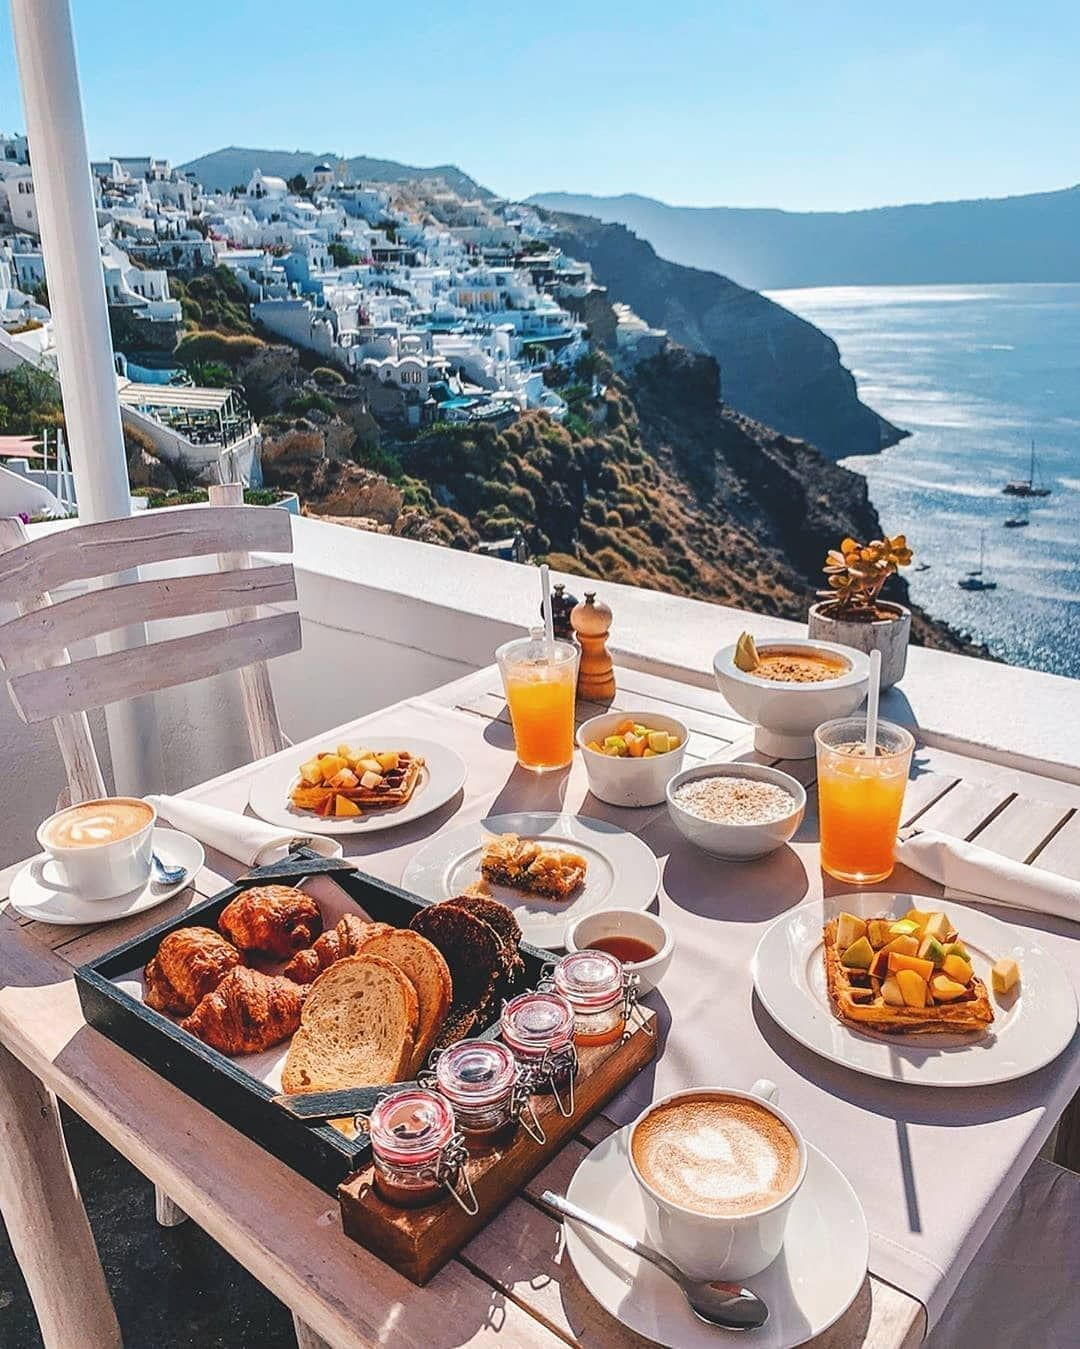 Could You Imagine A Better Place To Enjoy Your Breakfast